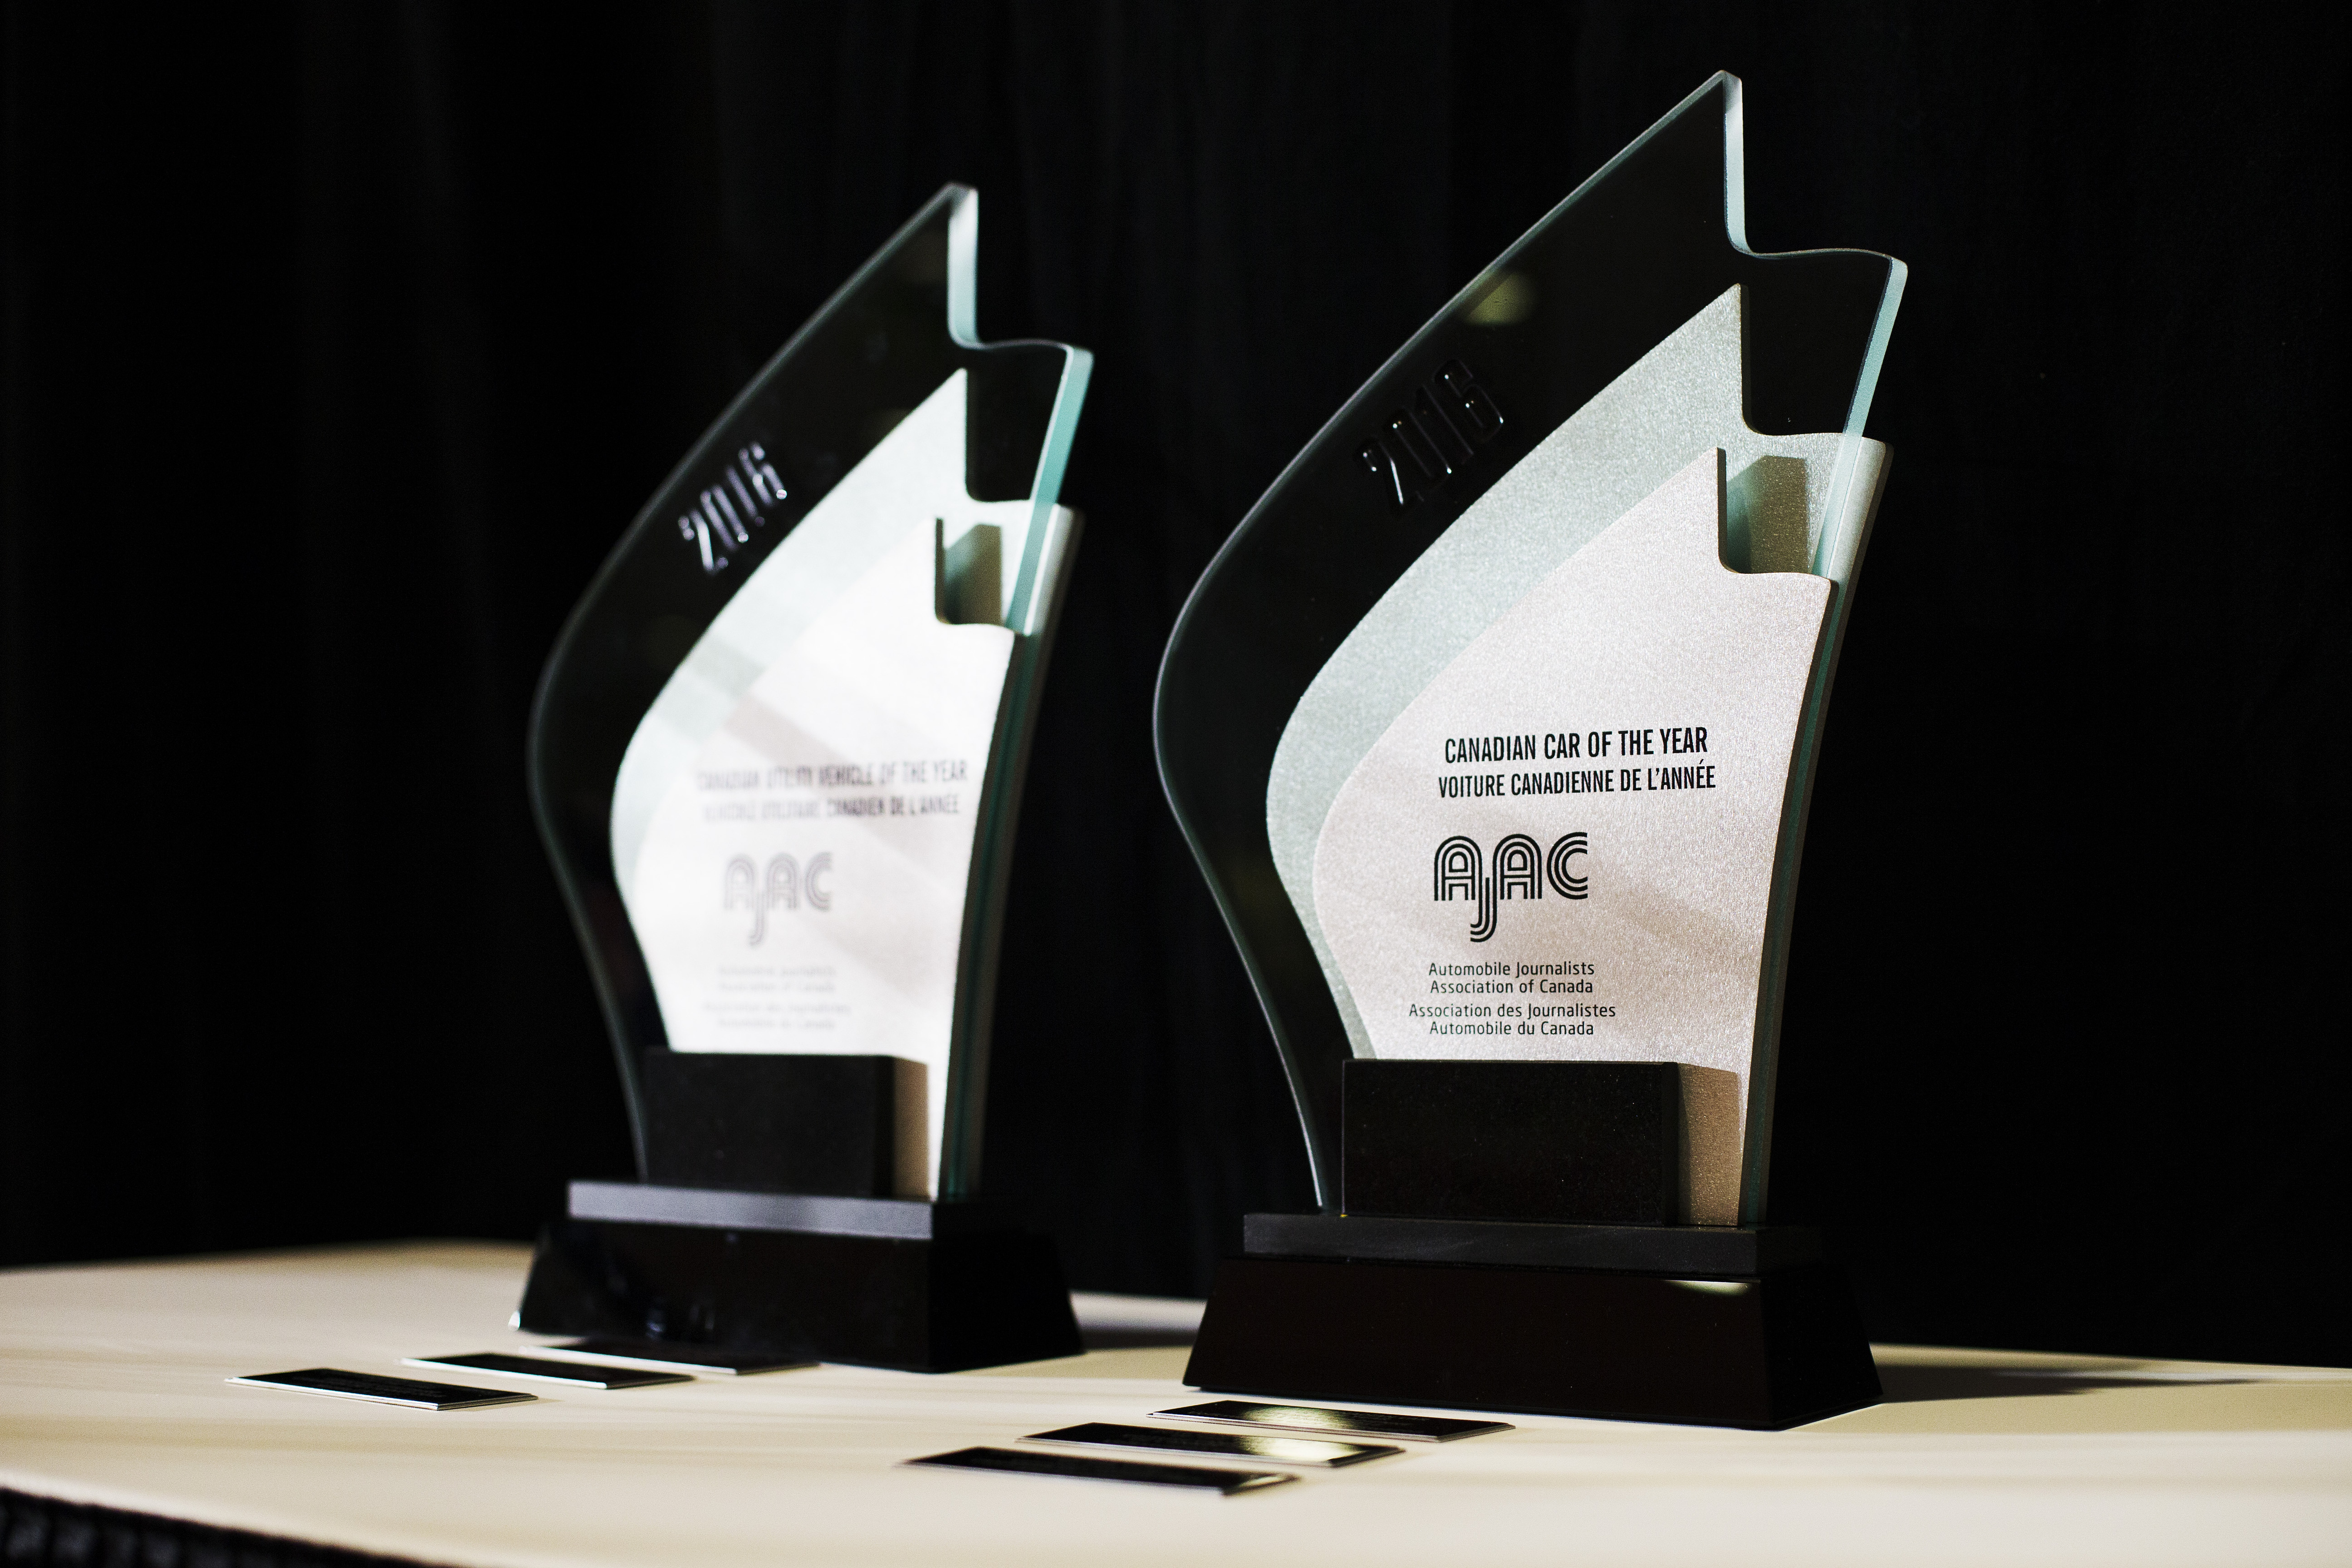 2016 Canadian Utility Vehicle of the Year and the 2016 Canadian Car of the Year trophies. (Photos By: Michelle Siu)